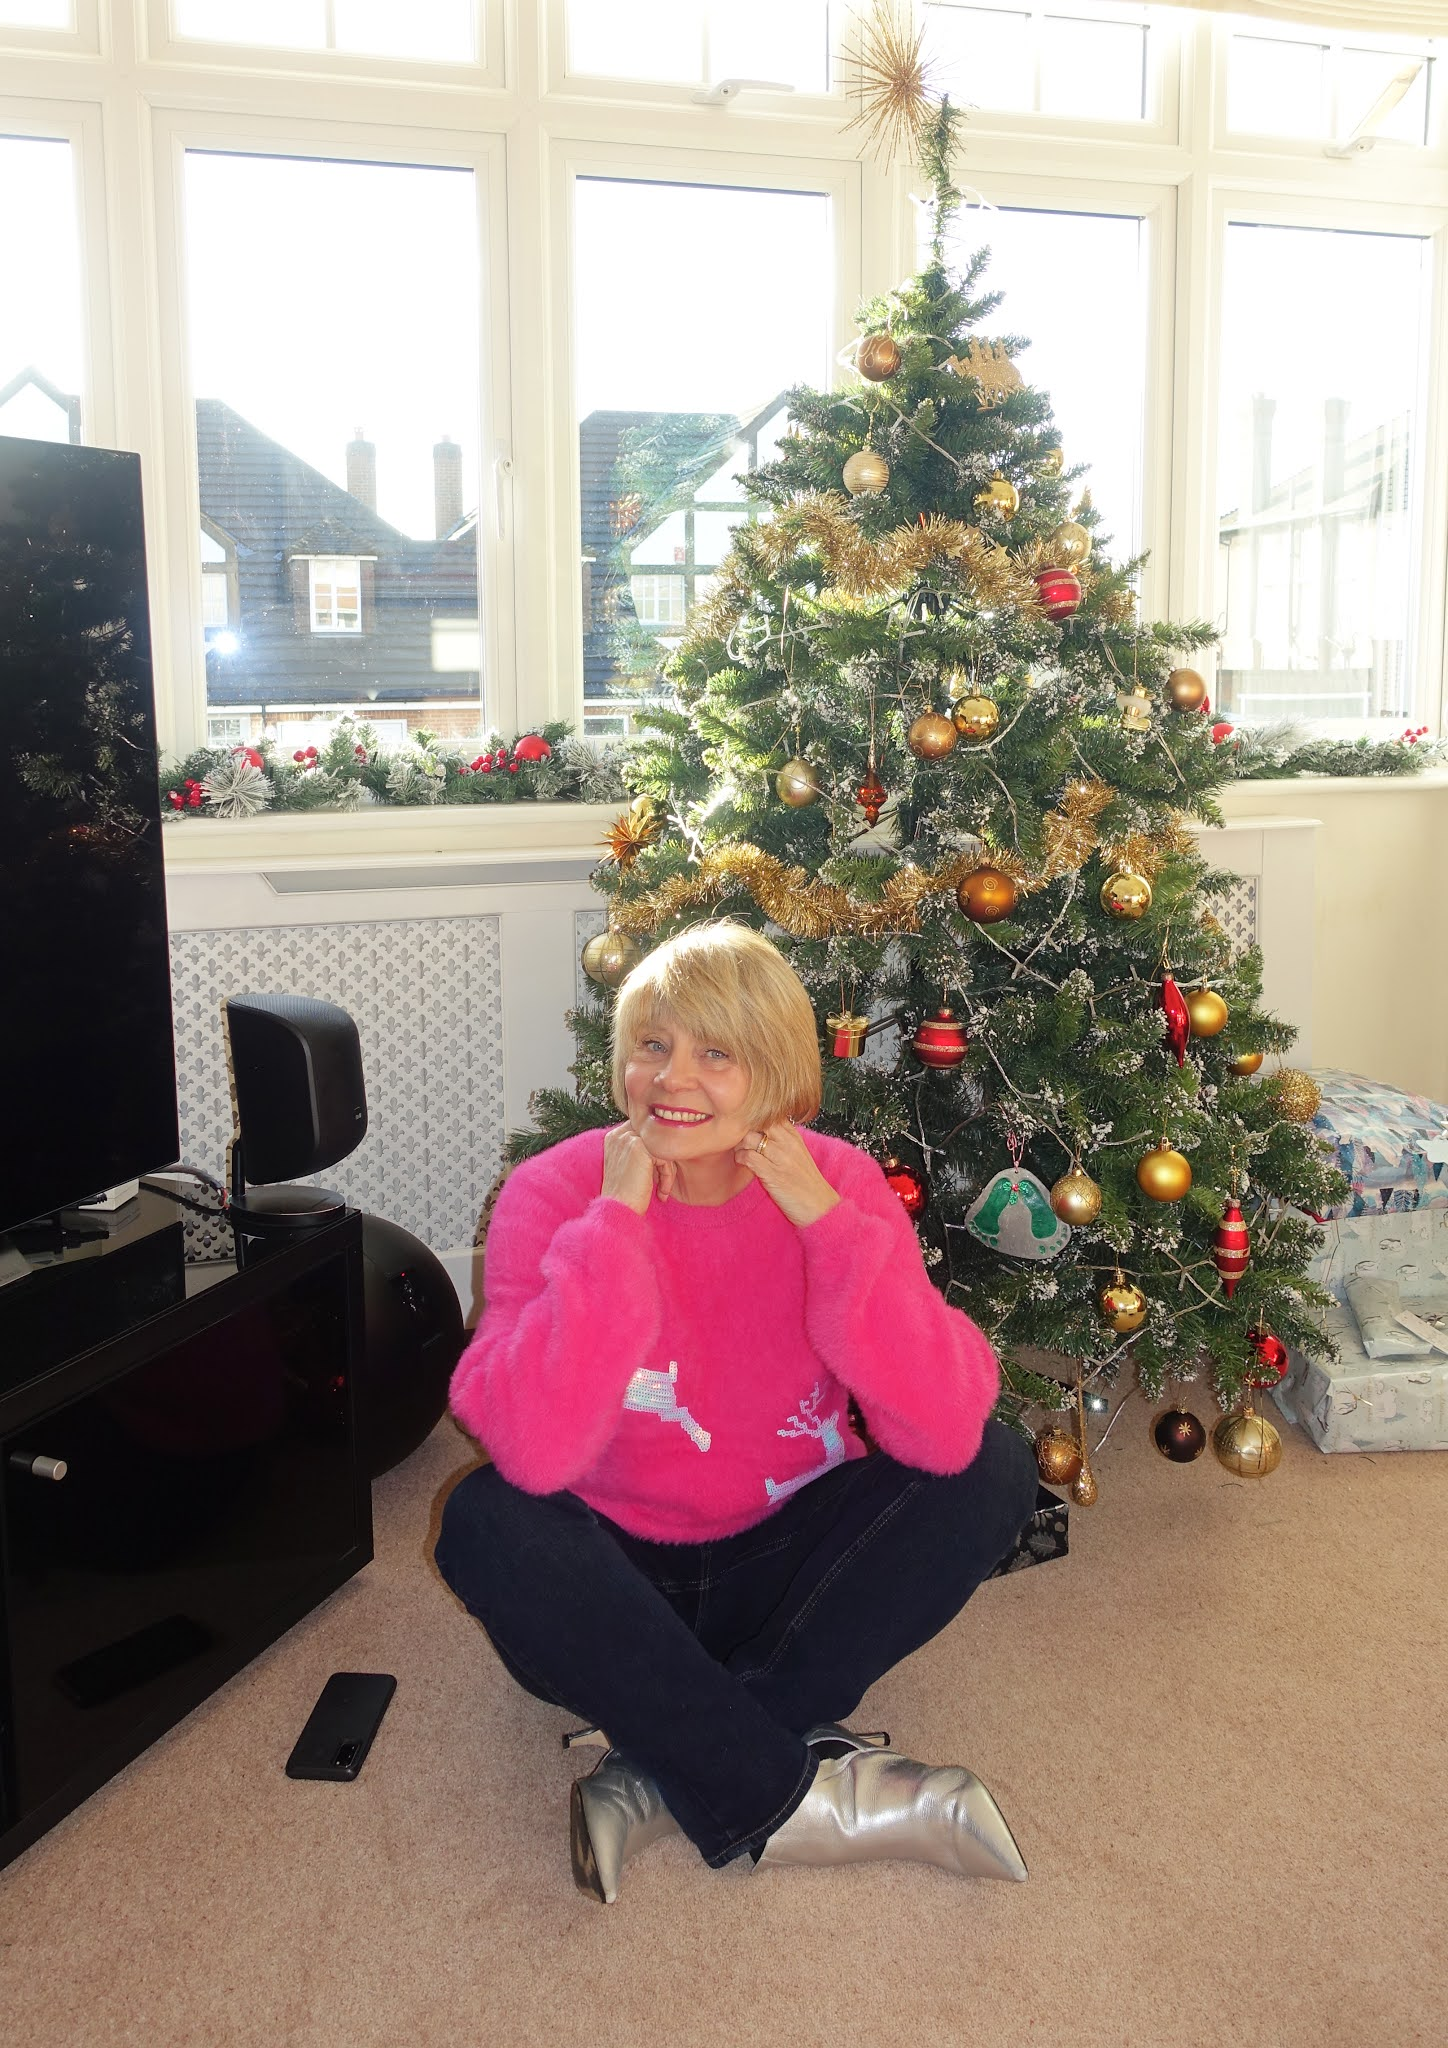 Gail Hanlon from style blog Is This Mutton? in her 2020 Christmas jumper bought from the children's dept of Marks and Spencer